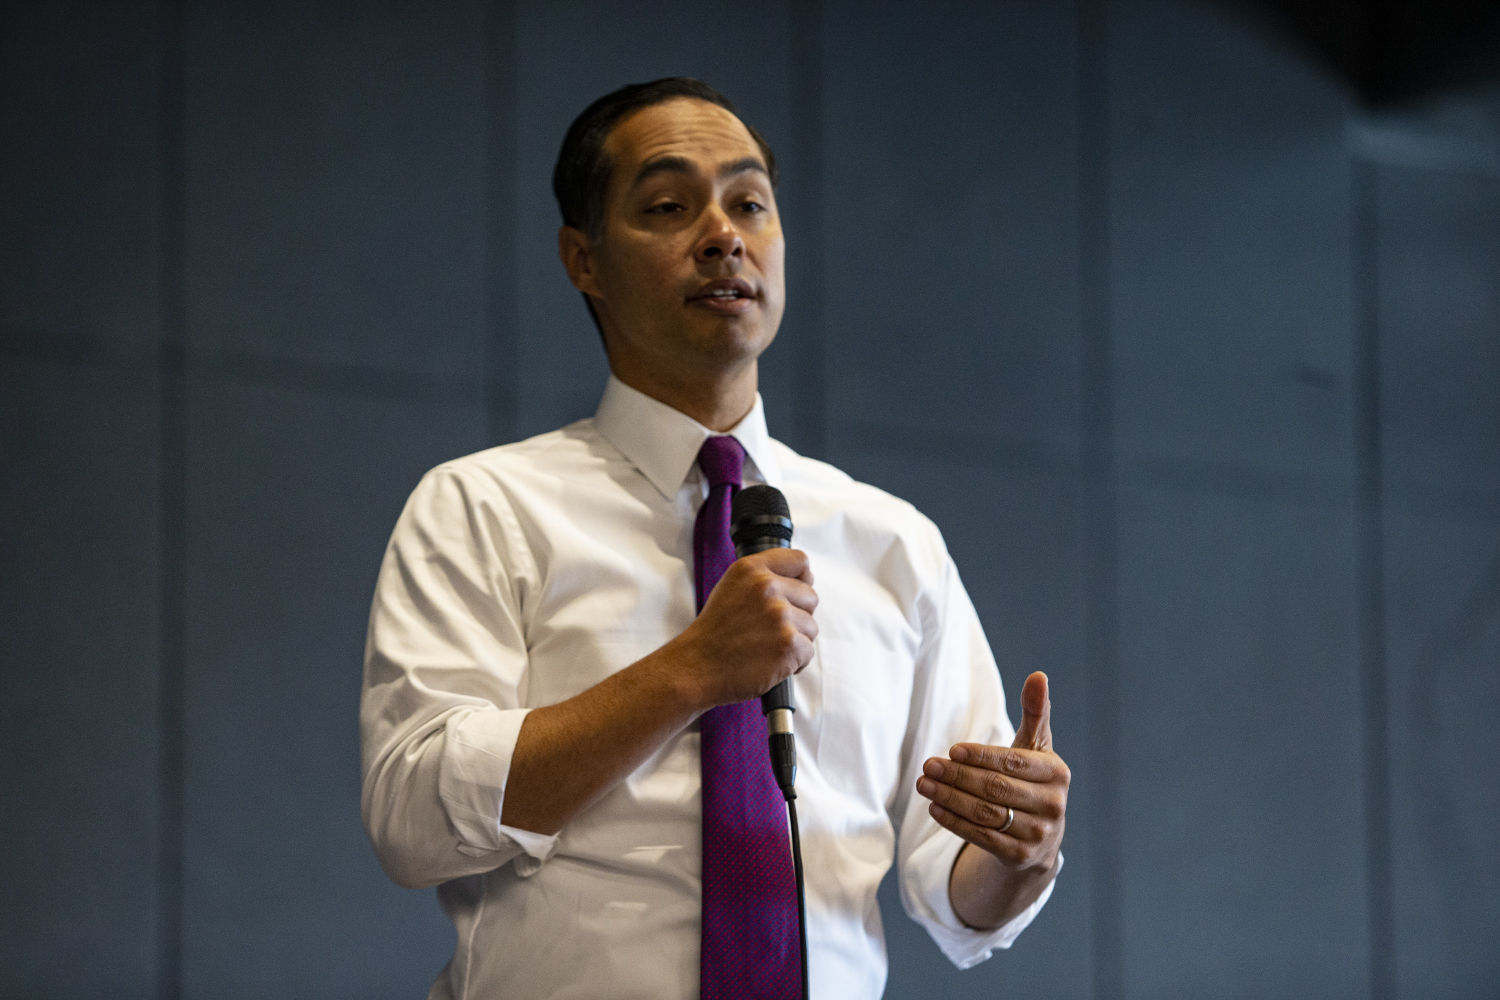 Democratic presidential candidate and former Housing and Urban Development Secretary Julian Castro speaks at St. Andrews Presbyterian Church on Oct. 18, 2019.